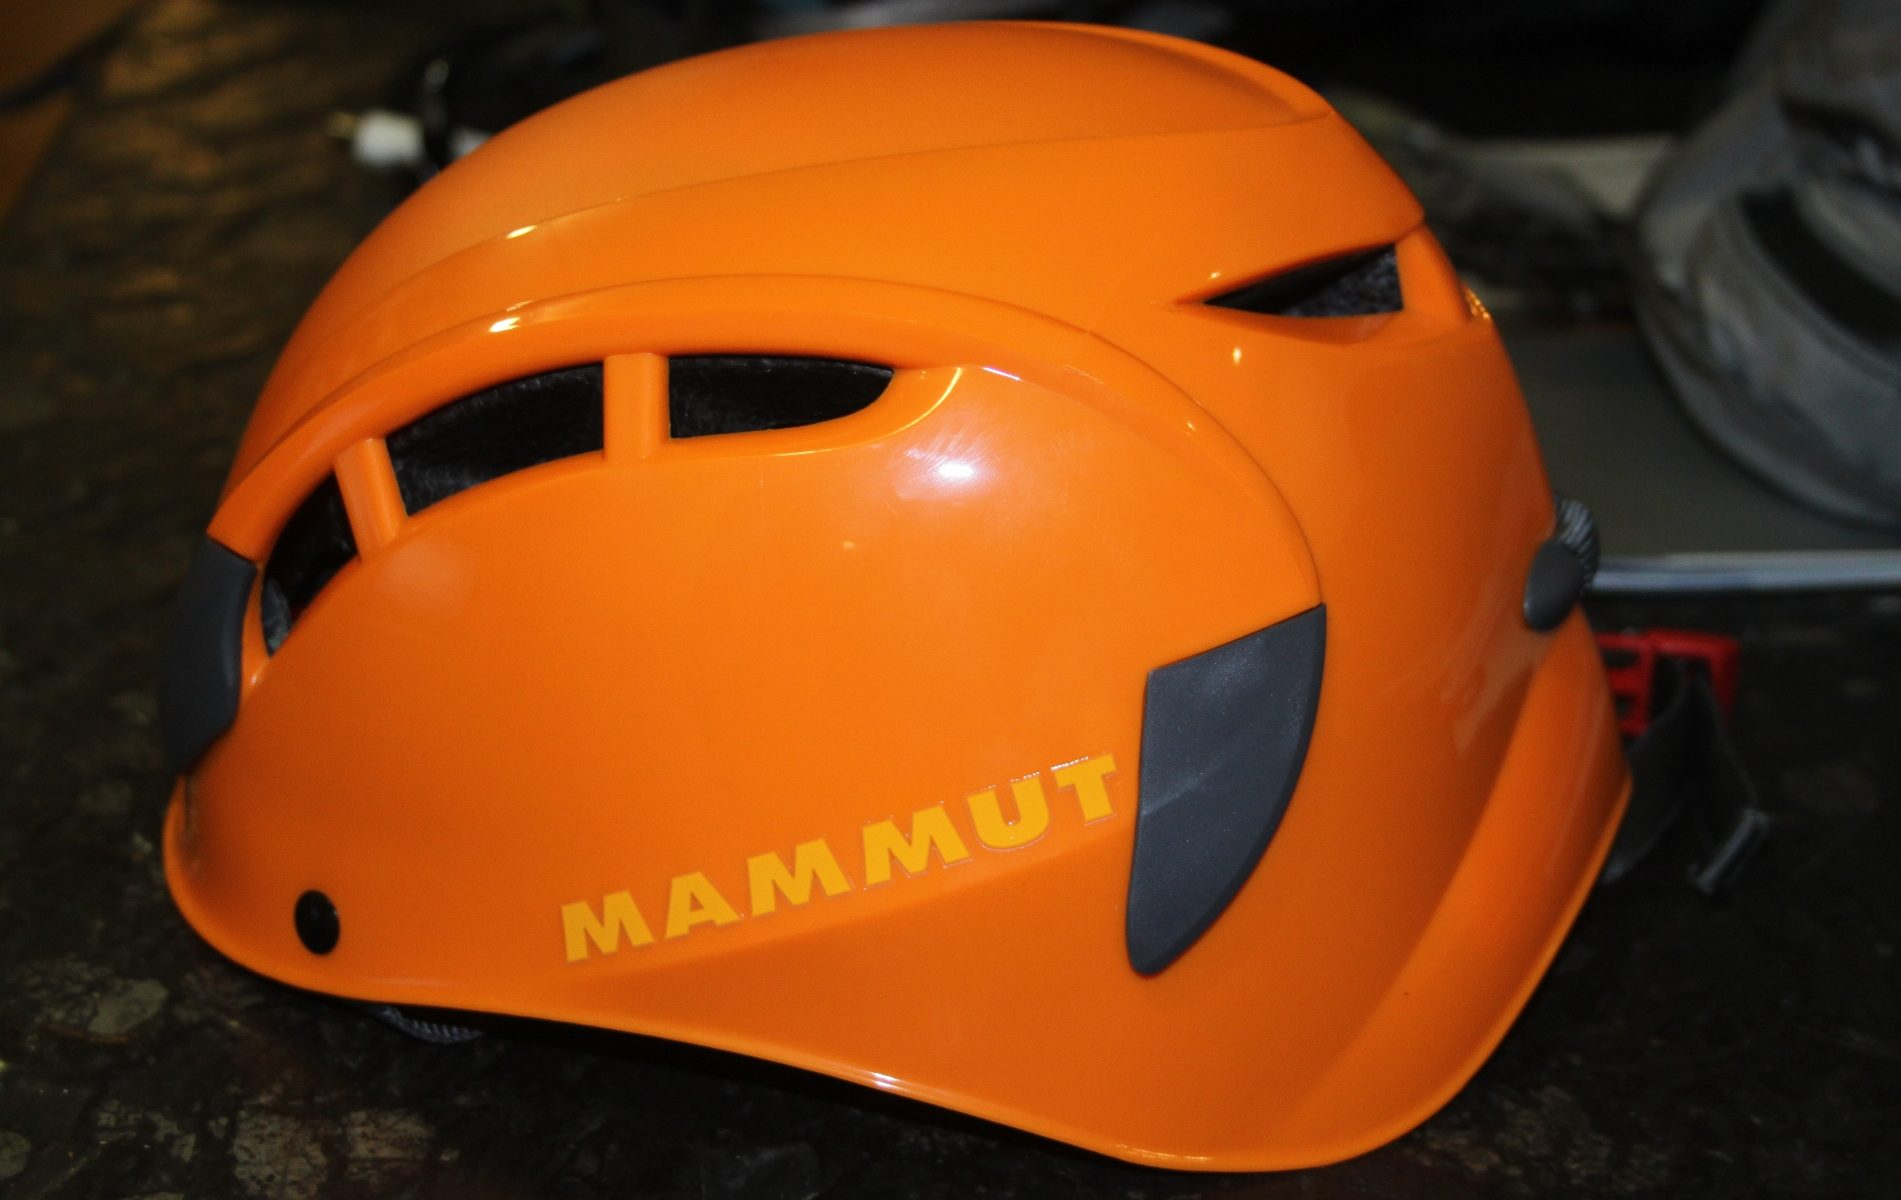 Mammut Klettergurt Test : Mammut klettergurt test skywalker helm im u being